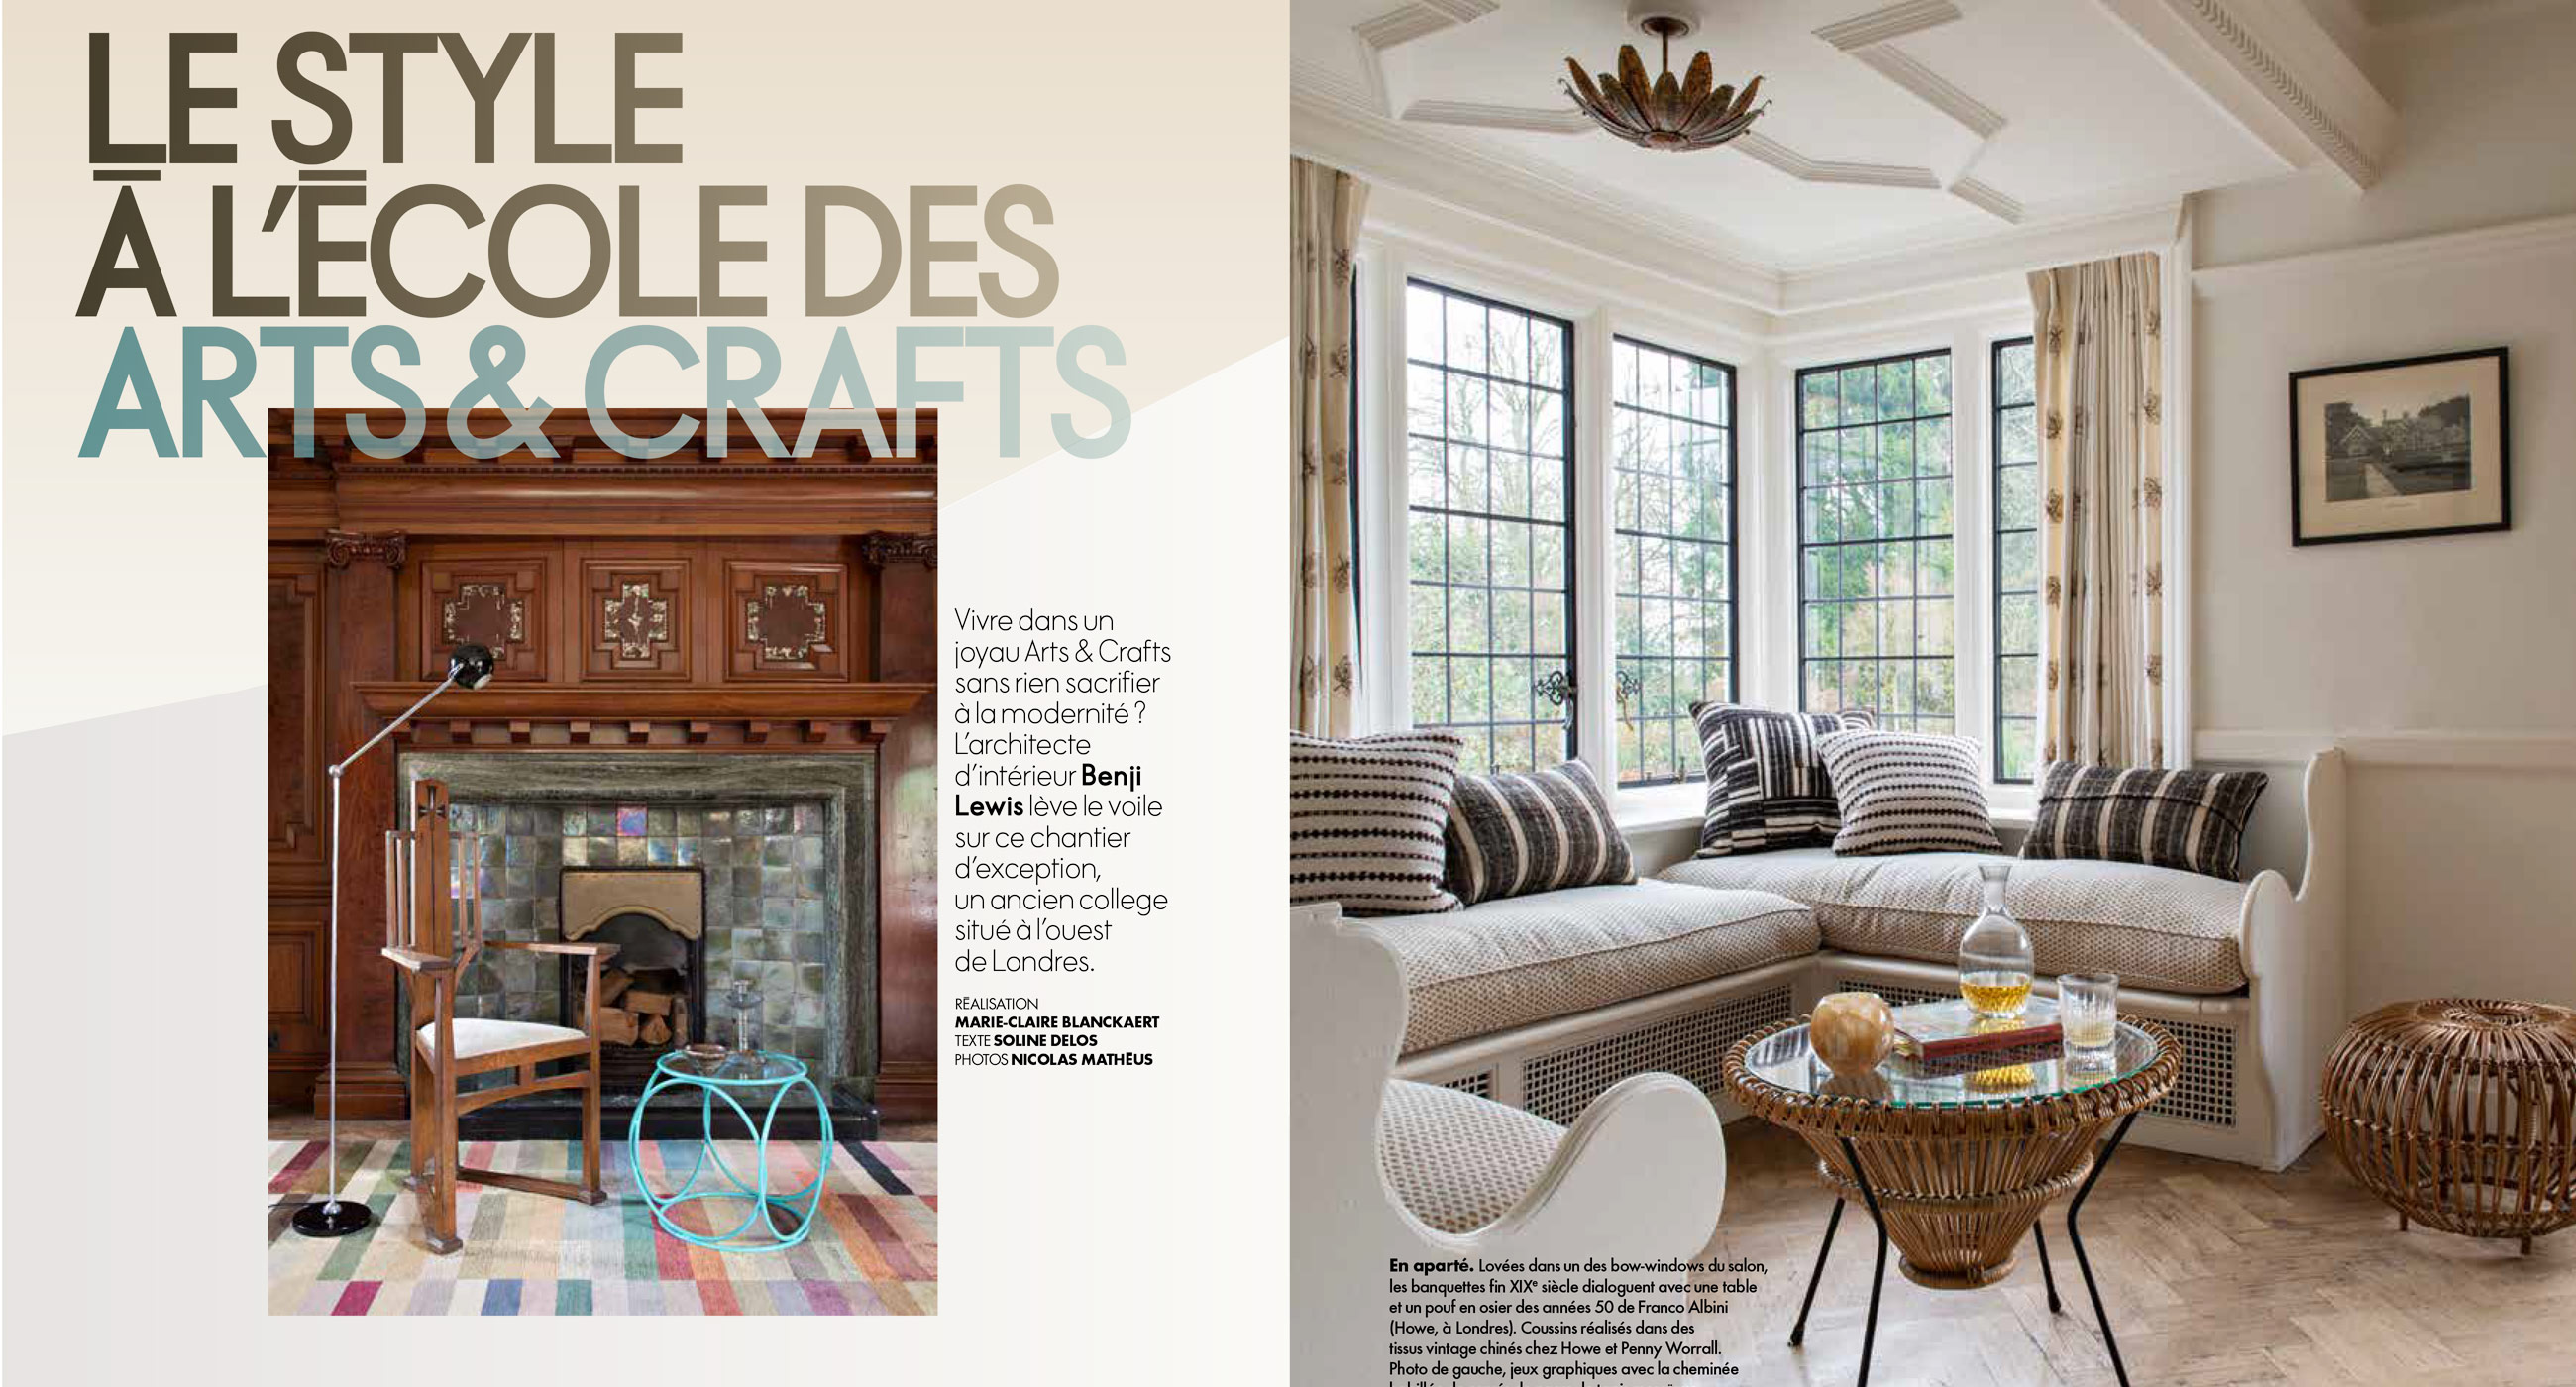 Press coverage in Arts and Crafts magazine